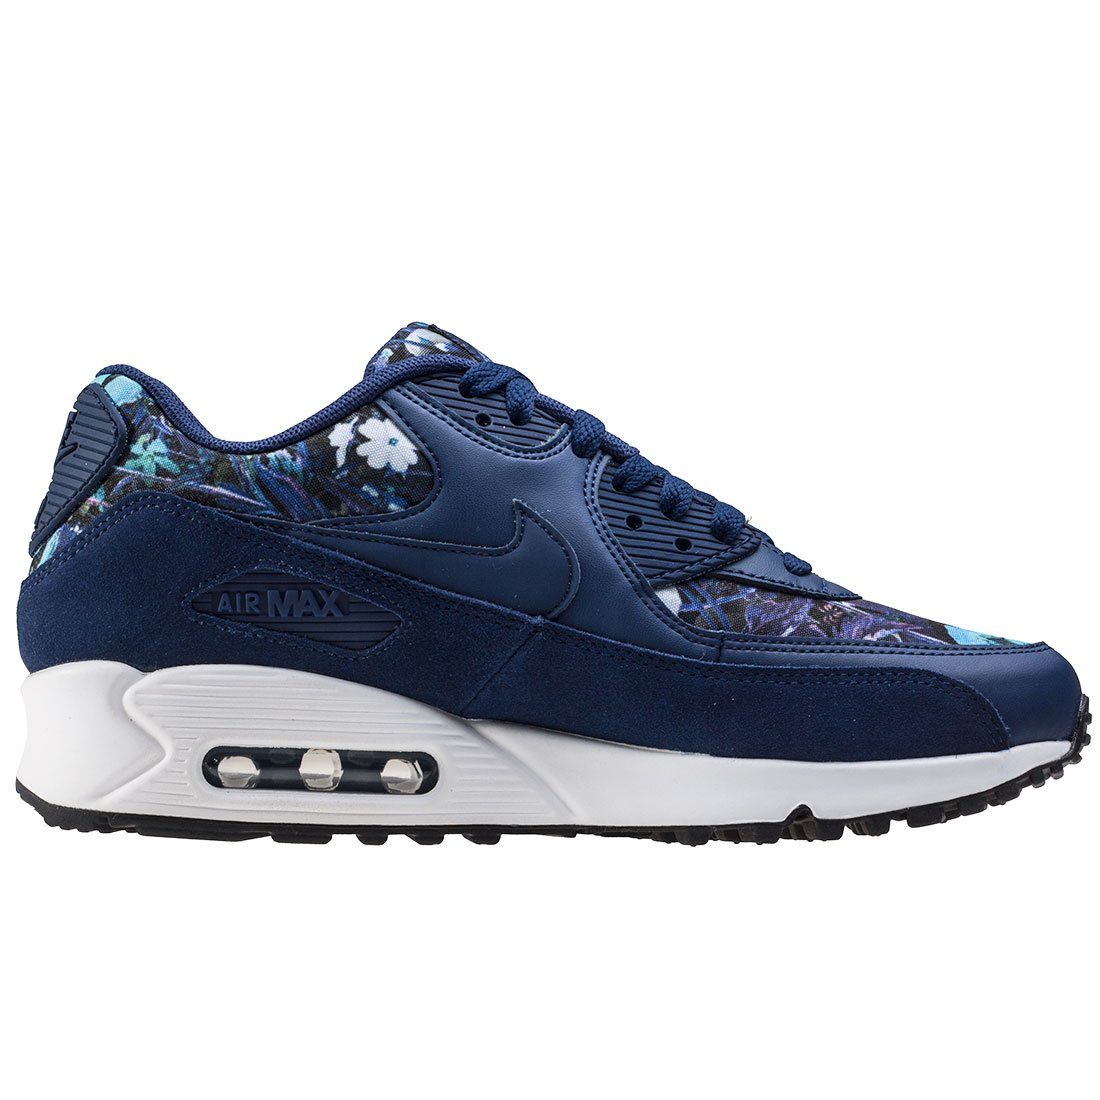 brand new 48e70 4c517 Nike Air Max 90 SE WMNS 881105-400  Amazon.co.uk  Shoes   Bags